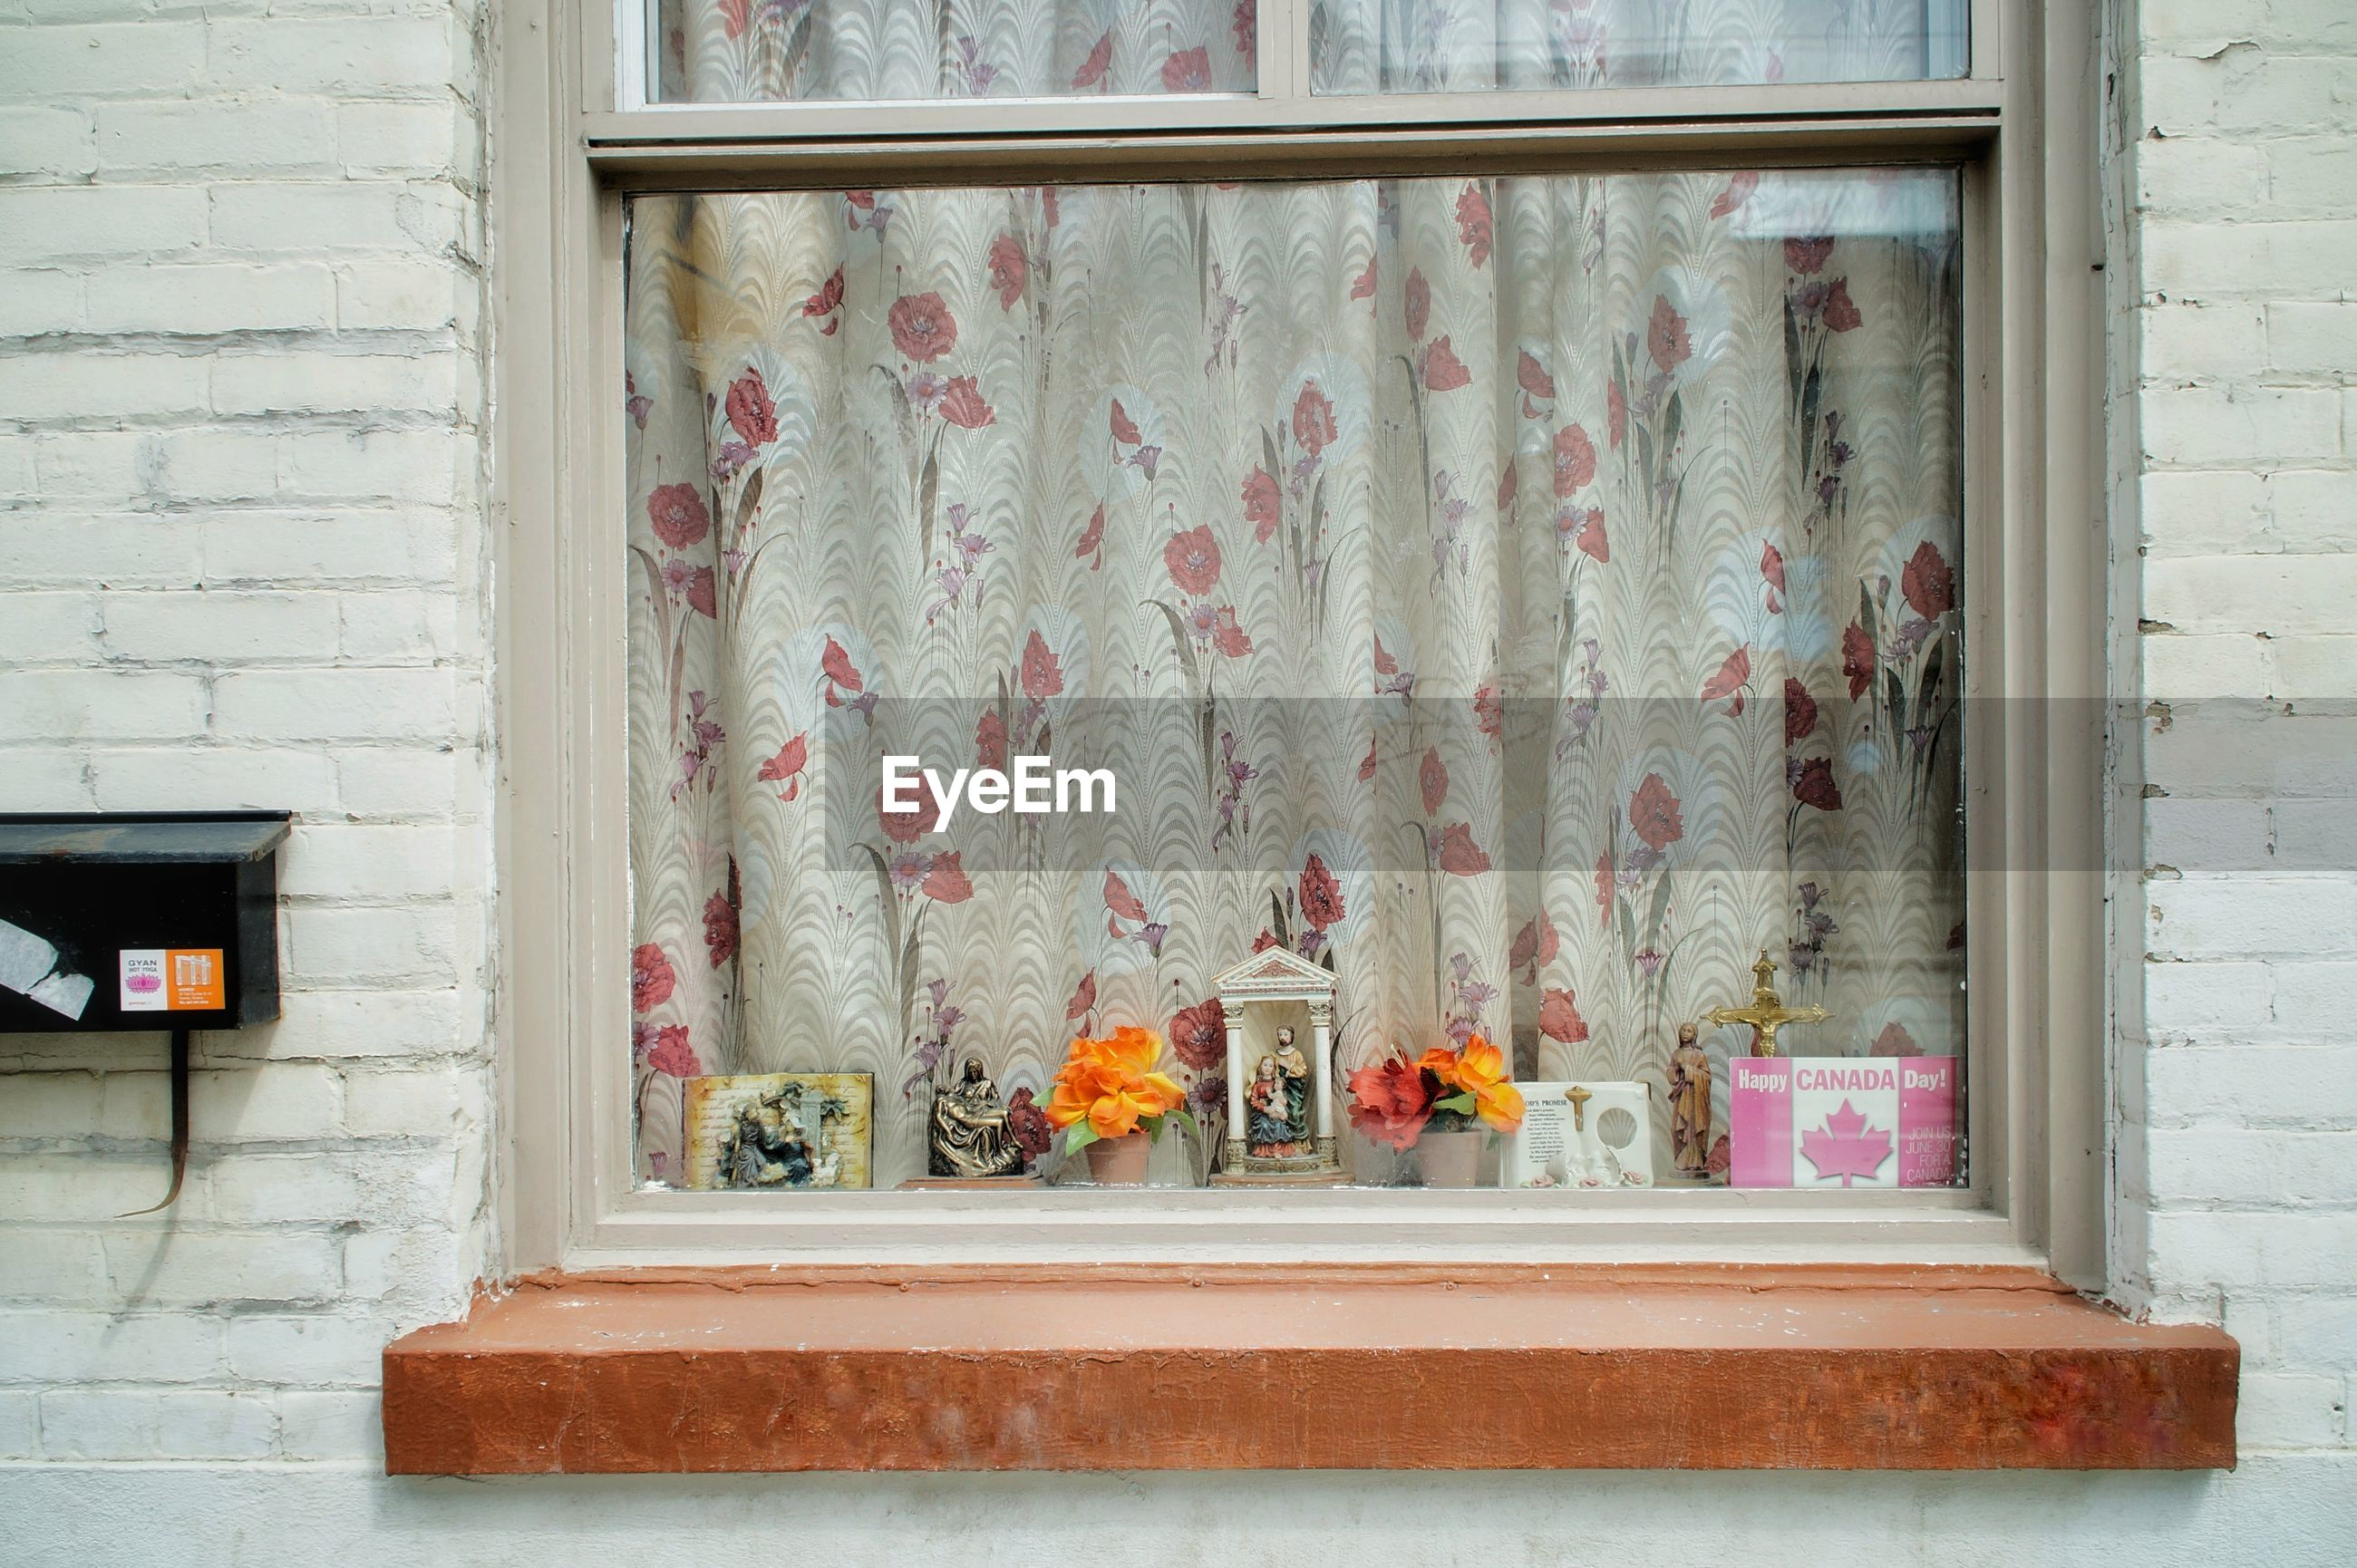 POTTED PLANTS ON WINDOW SILL